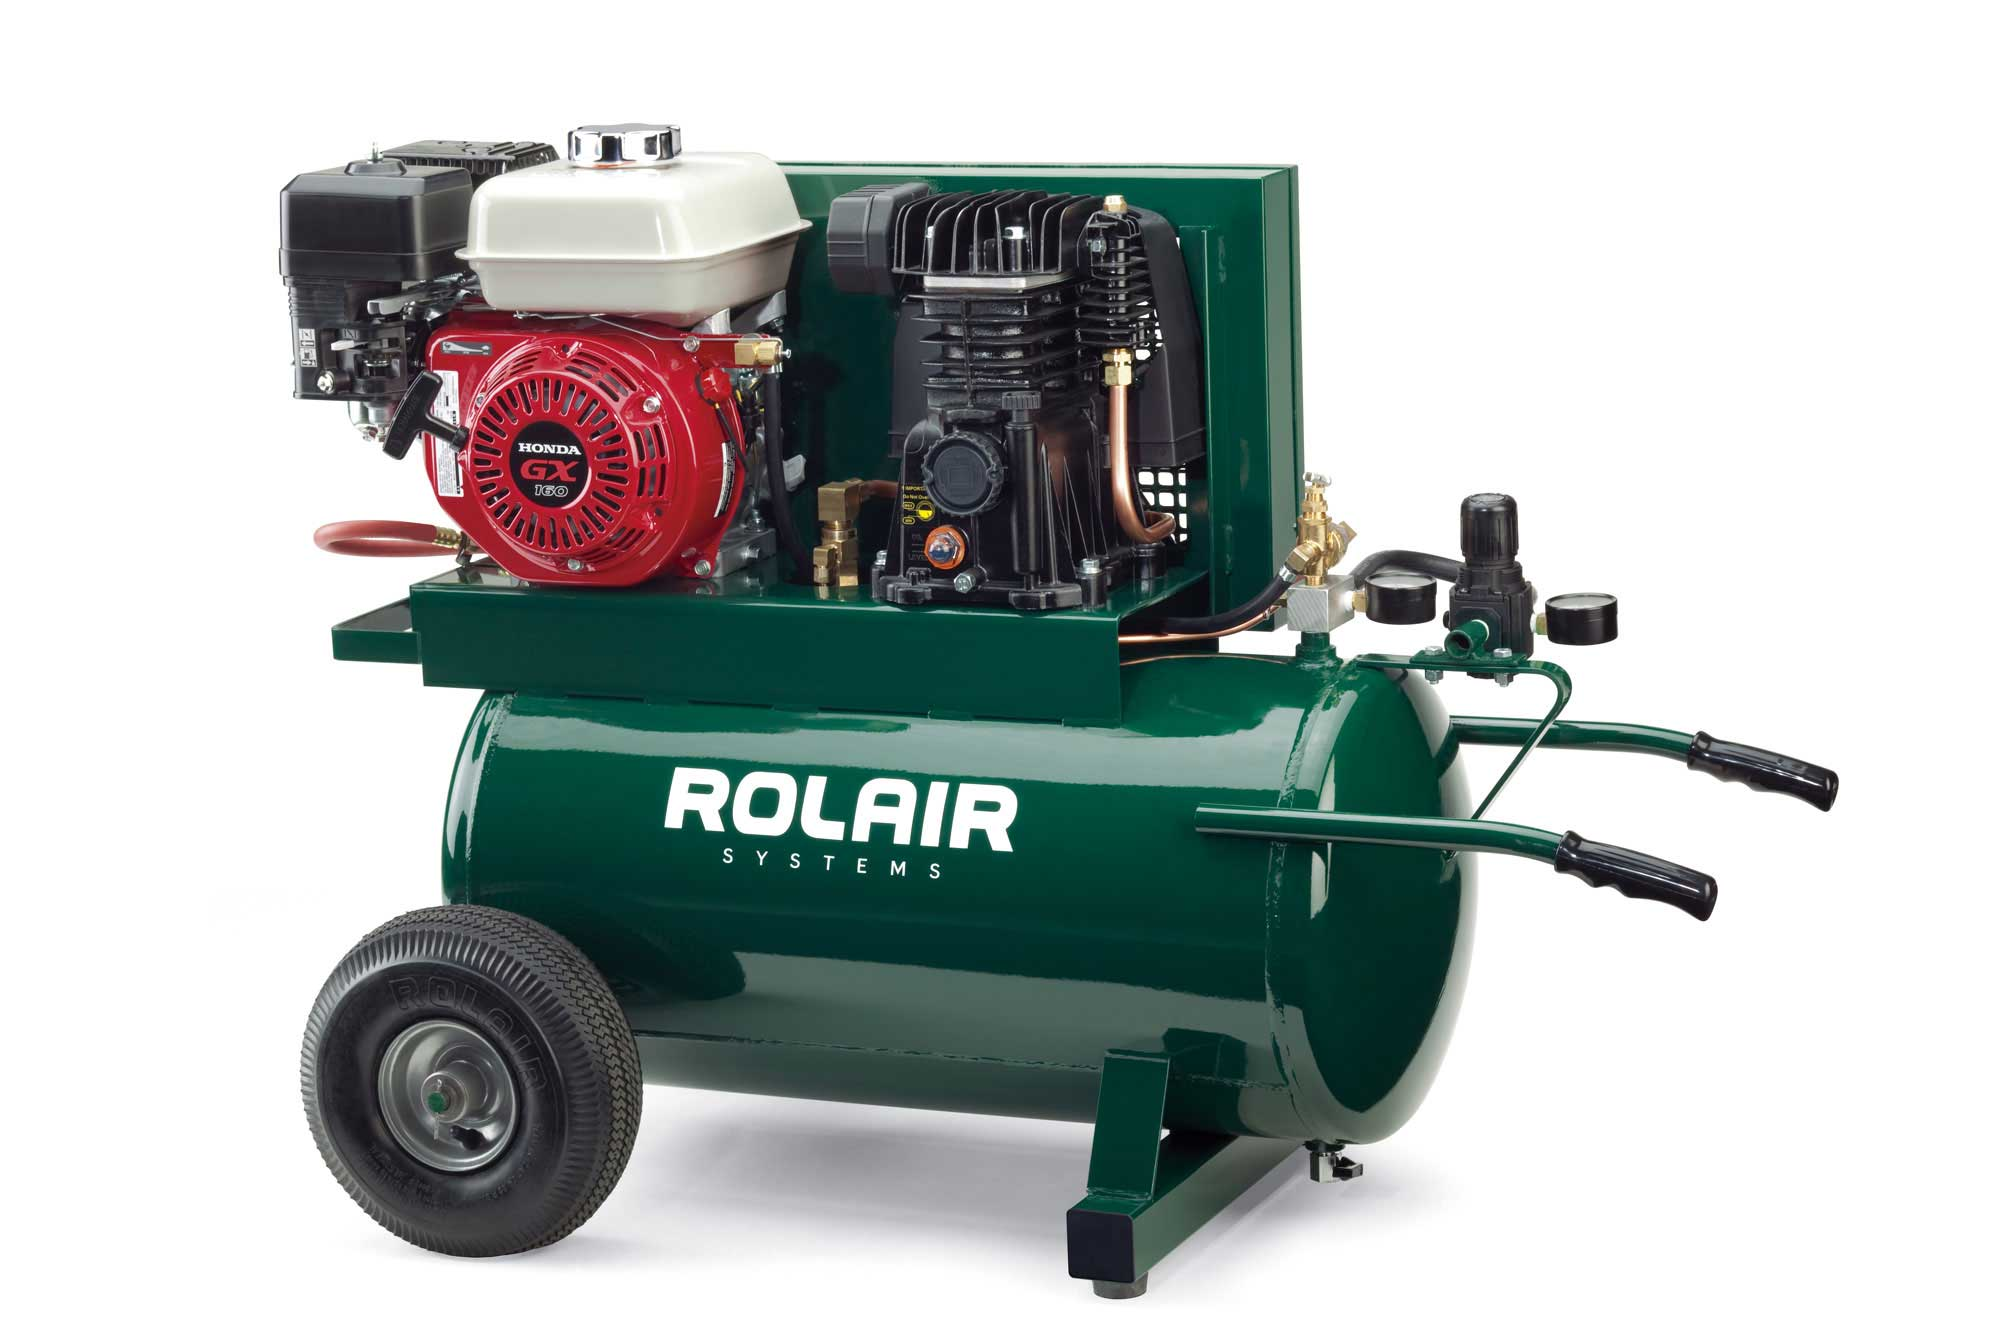 Rolair 5.5 HP 20 Gallon Gas Portable Air Compressor w/Honda Engine 4090HMK103/20